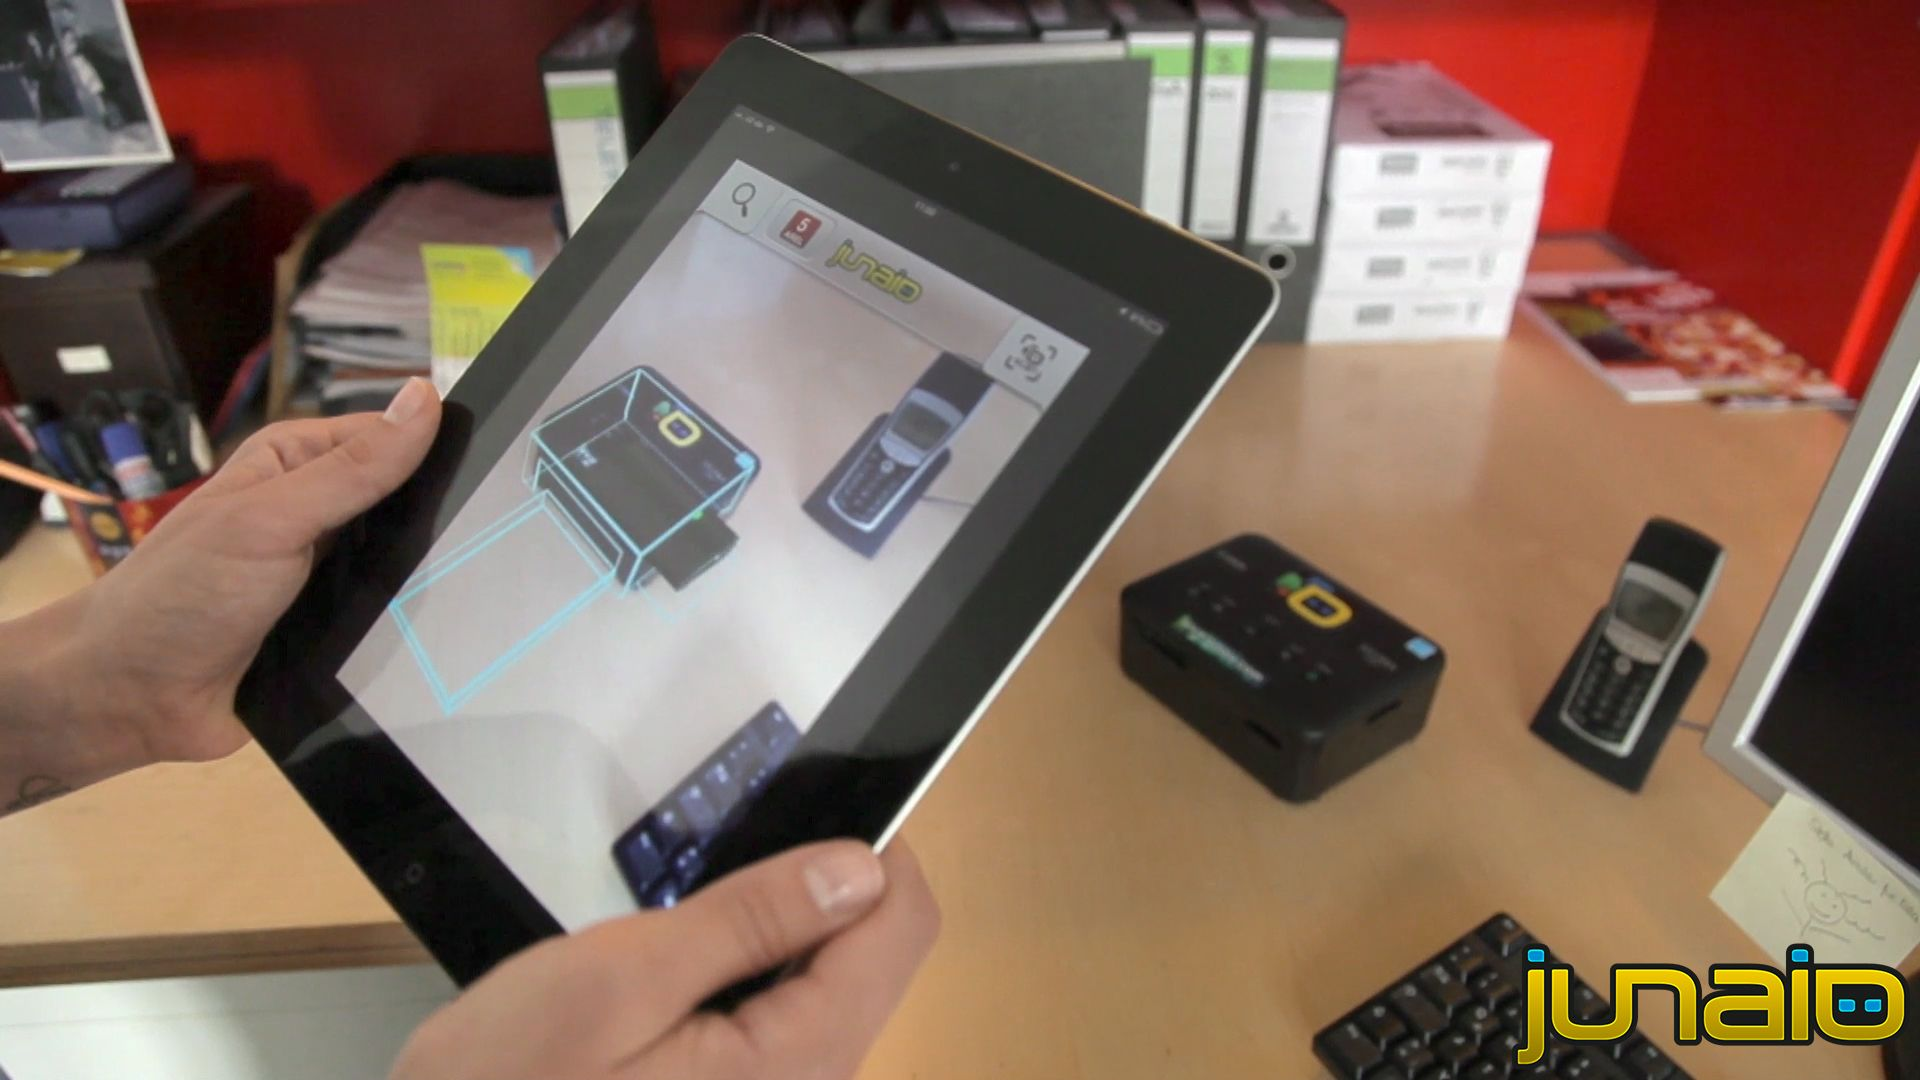 Augmented Reality Gives You Additional Contents On Top Of